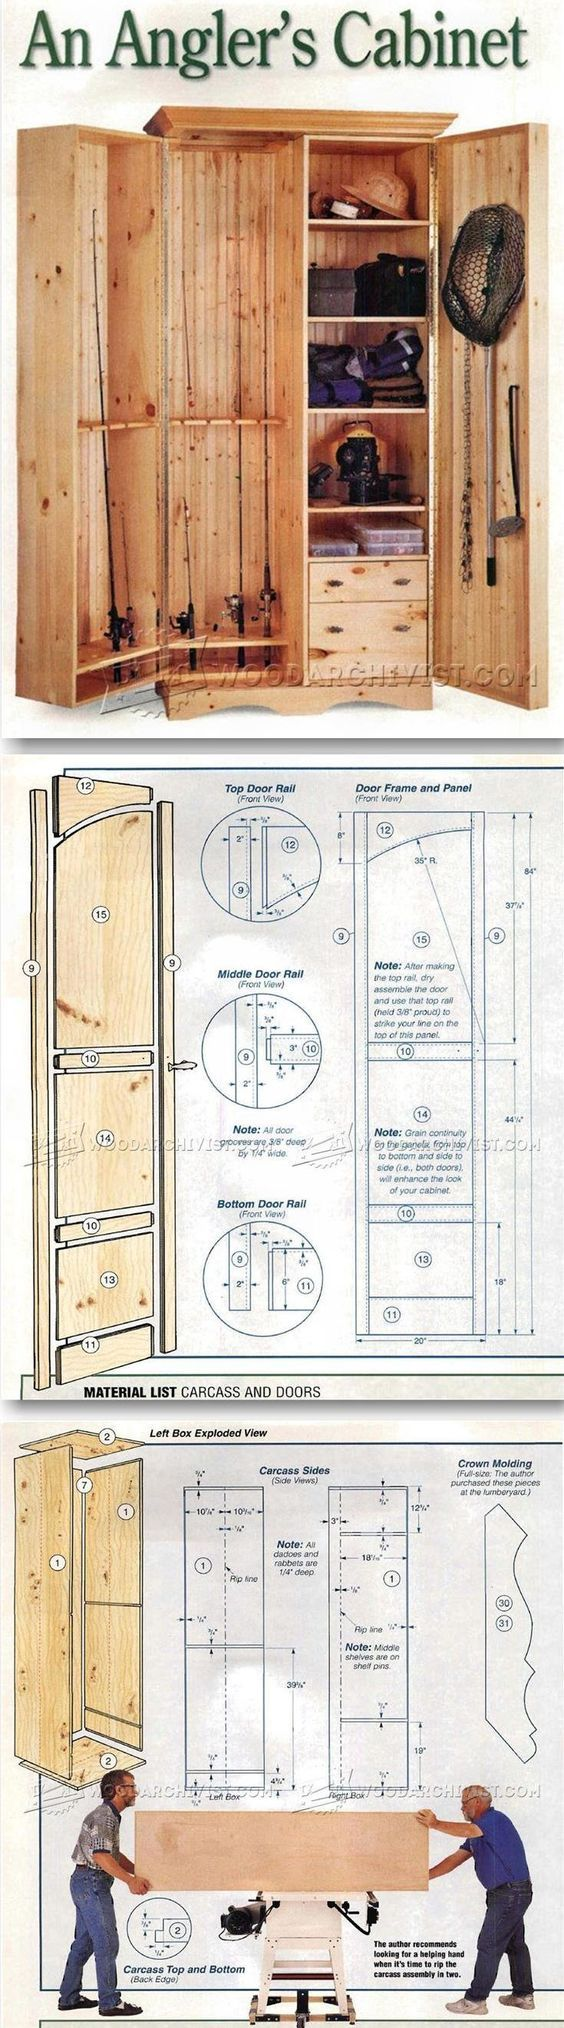 Fishing Rod Cabinet Plans   Furniture Plans And Projects   Woodwork,  Woodworking, Woodworking Plans, Woodworking Projects